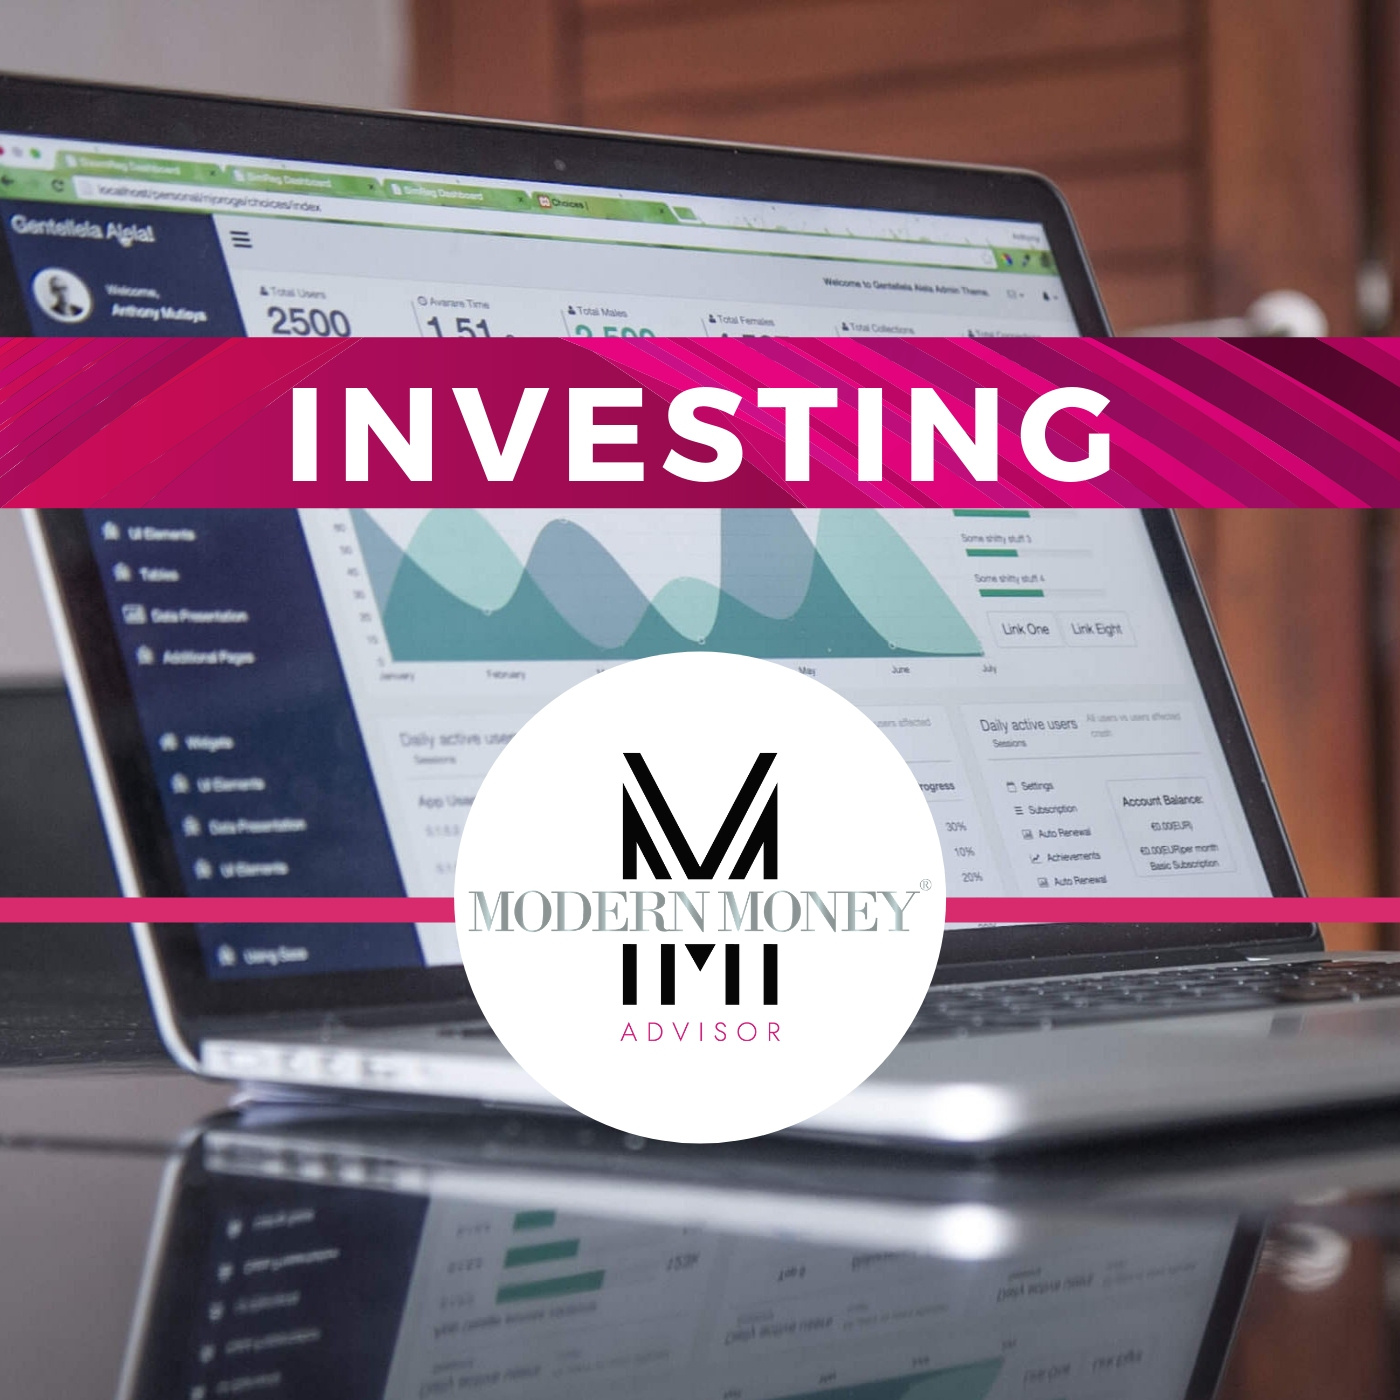 View Your Investments - Access to your Modern Money Advisor investment accounts, allocation, investment goals and investment account statements.